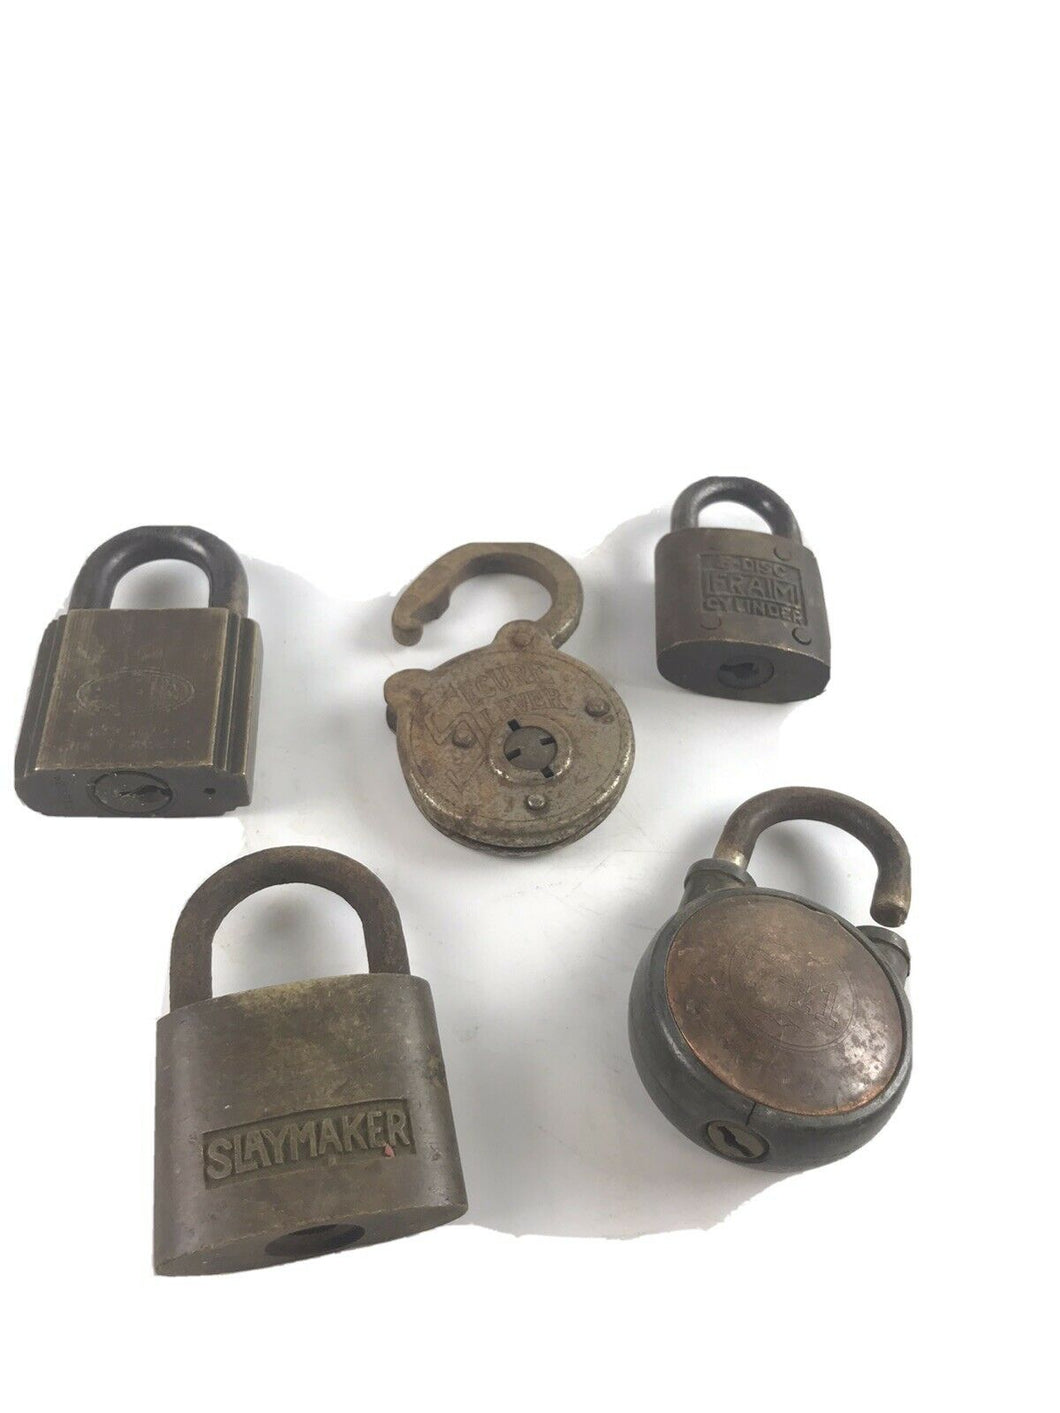 Assorted Lot Of 5 Vintage Padlocks/Locks - No Keys- 5244